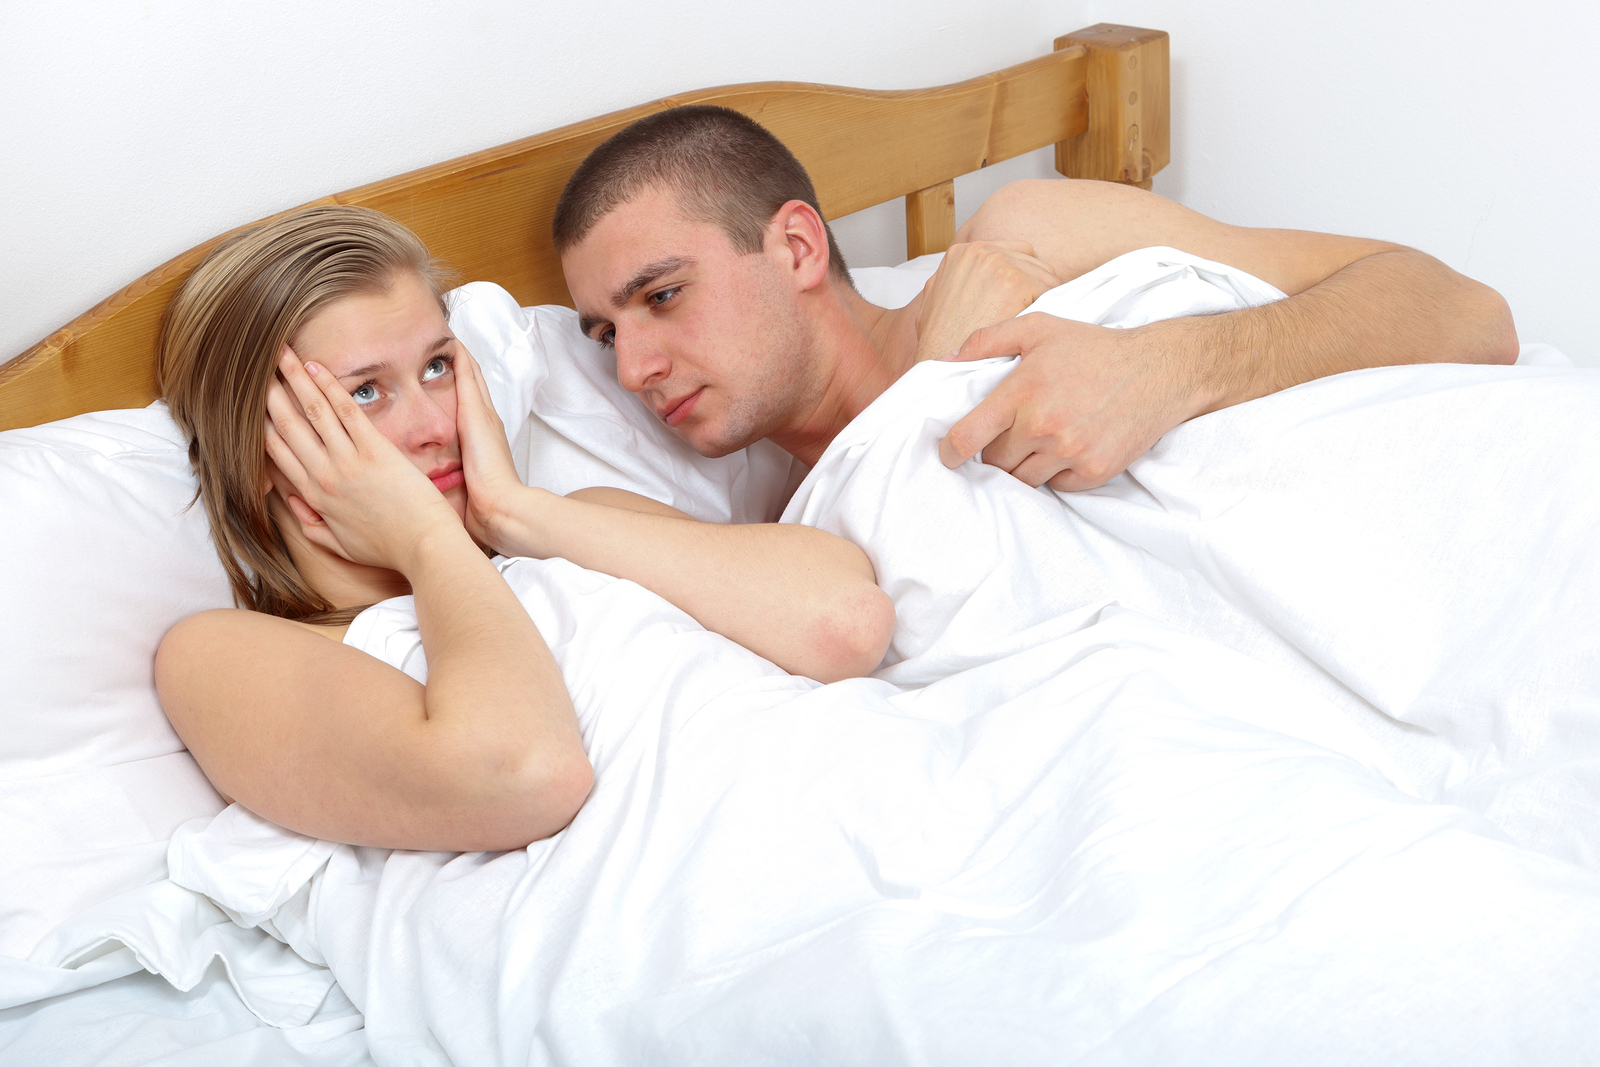 picturs of people having sex  312837